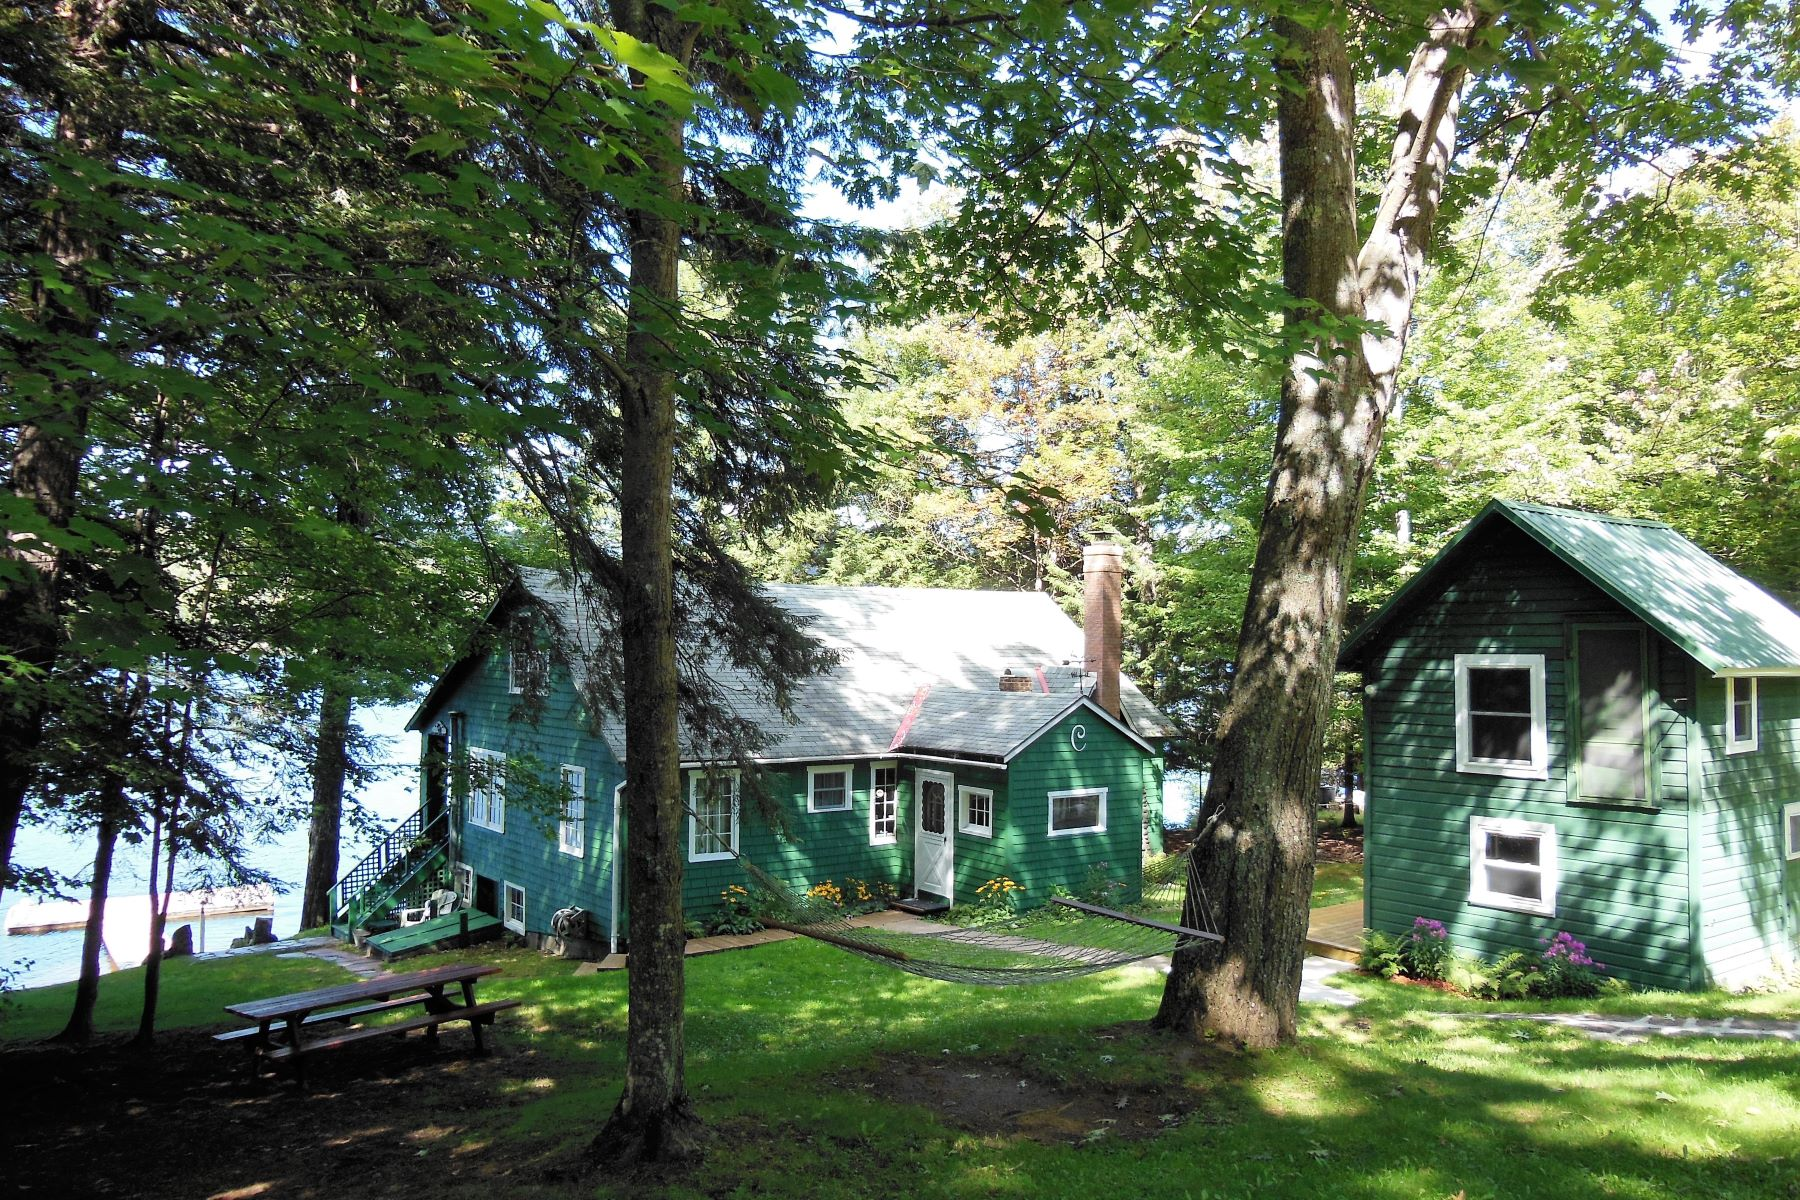 Additional photo for property listing at Idyllic family complex on the sandy shores of Fourth Lake. 413 Petrie Rd. Old Forge, Nueva York 13420 Estados Unidos